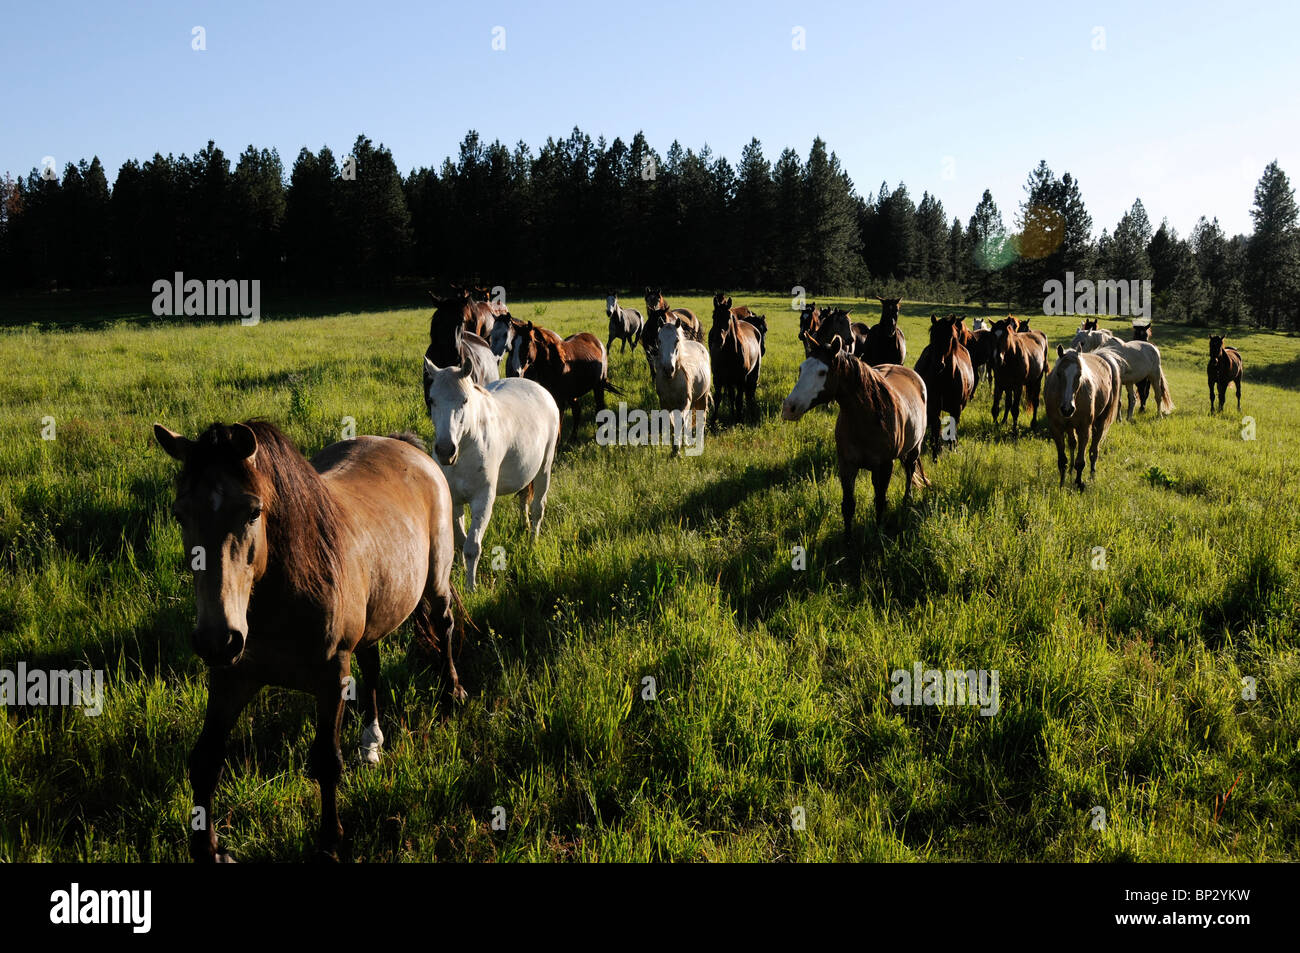 Herd of Lusitano horses on a ranch in Oregon. Wilderness country. Stock Photo